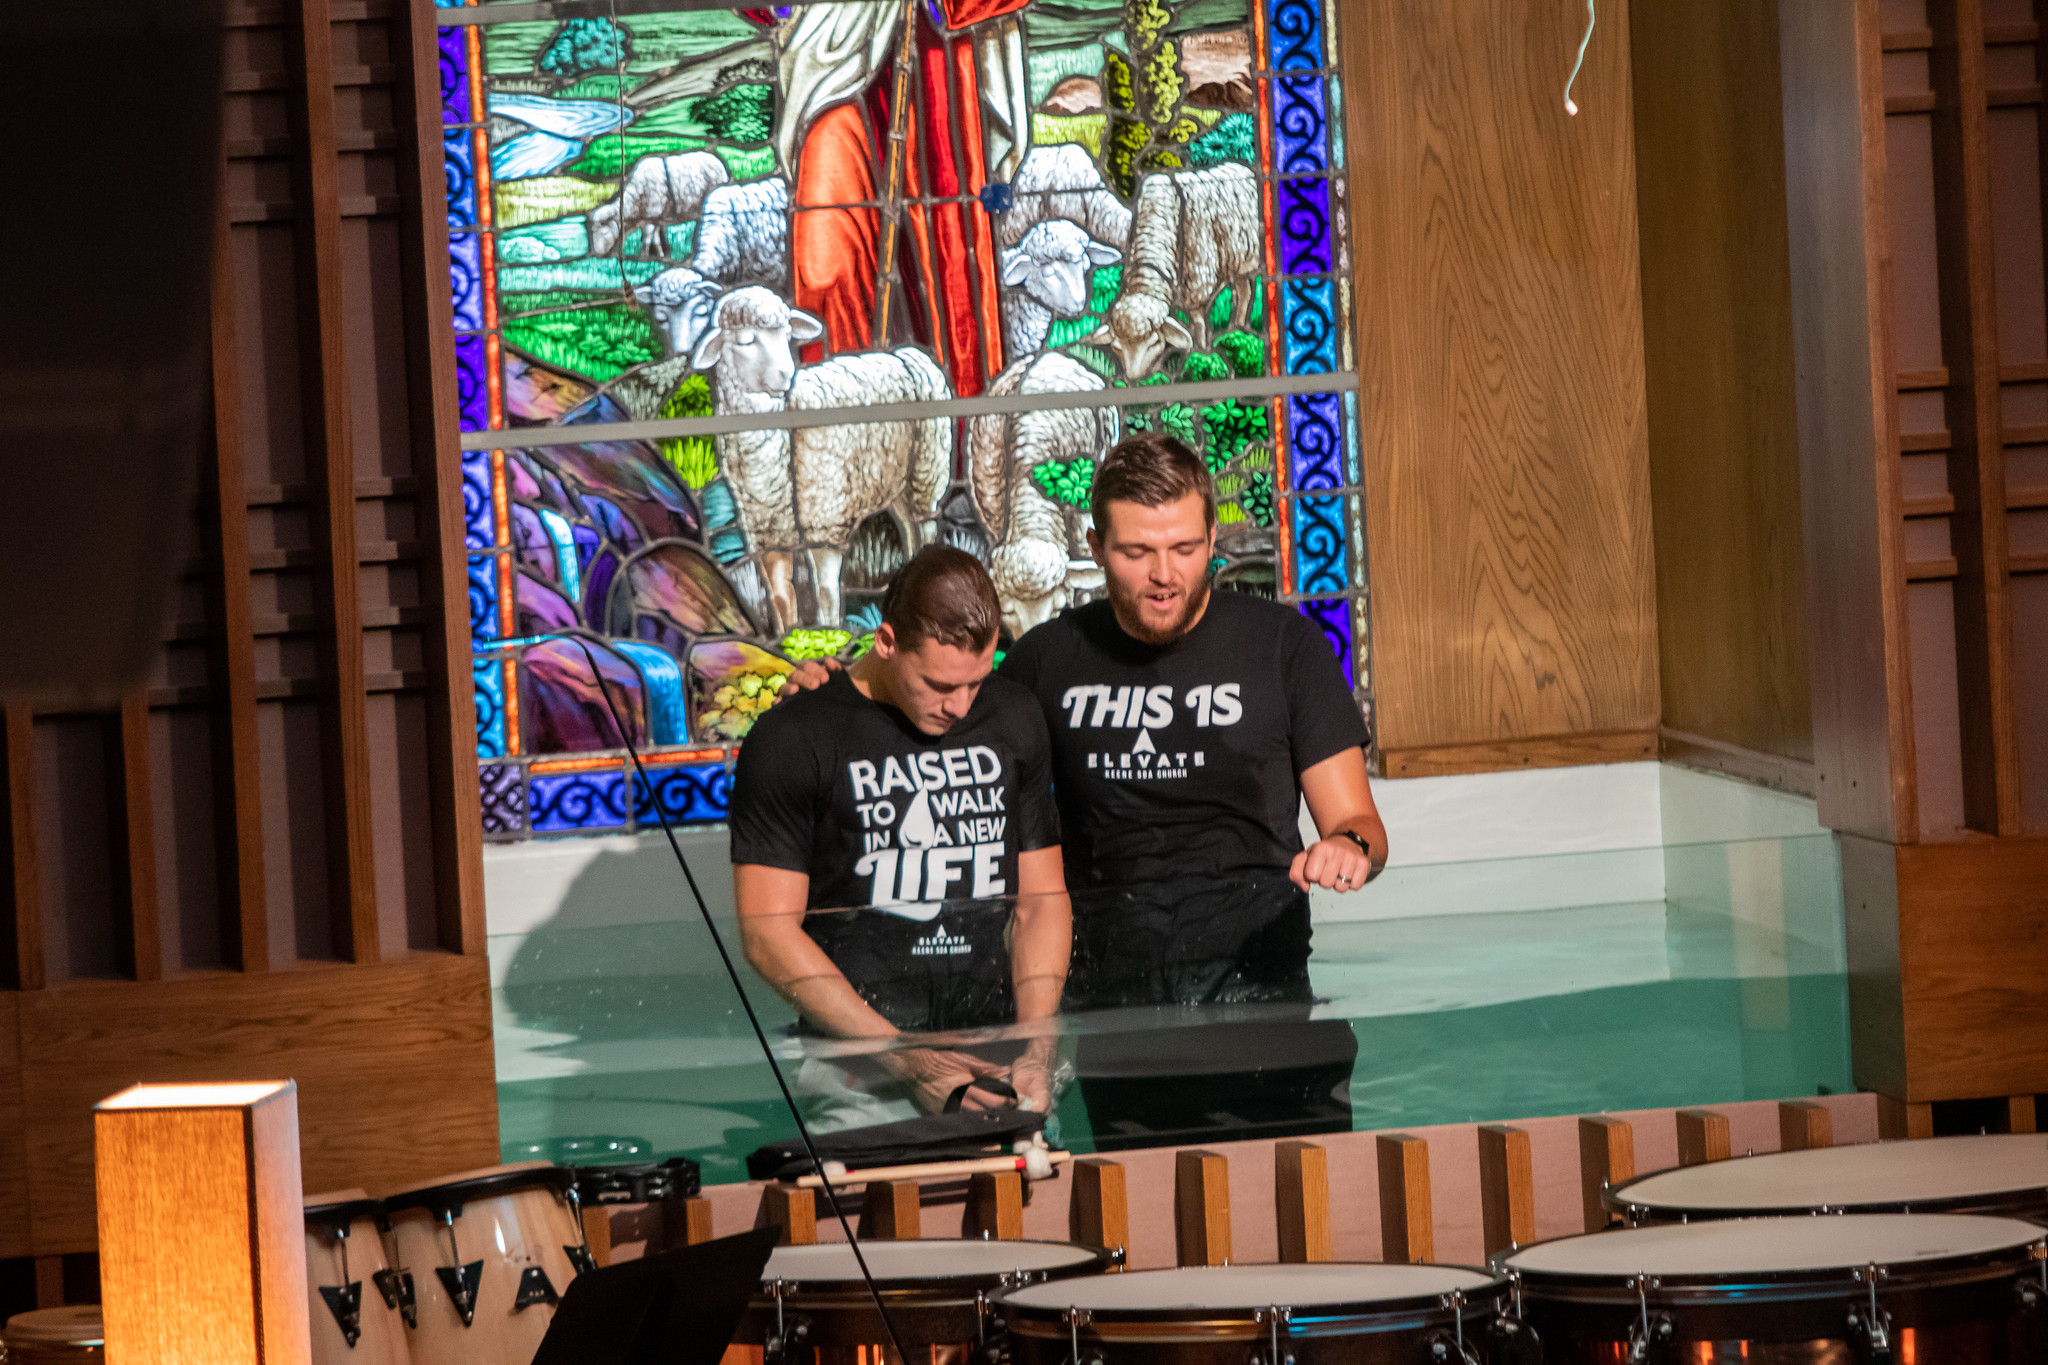 Standing in a baptismal pool, a pastor, dressed in a black t-shirt, prays as he puts his arm over a student, who has just been baptized